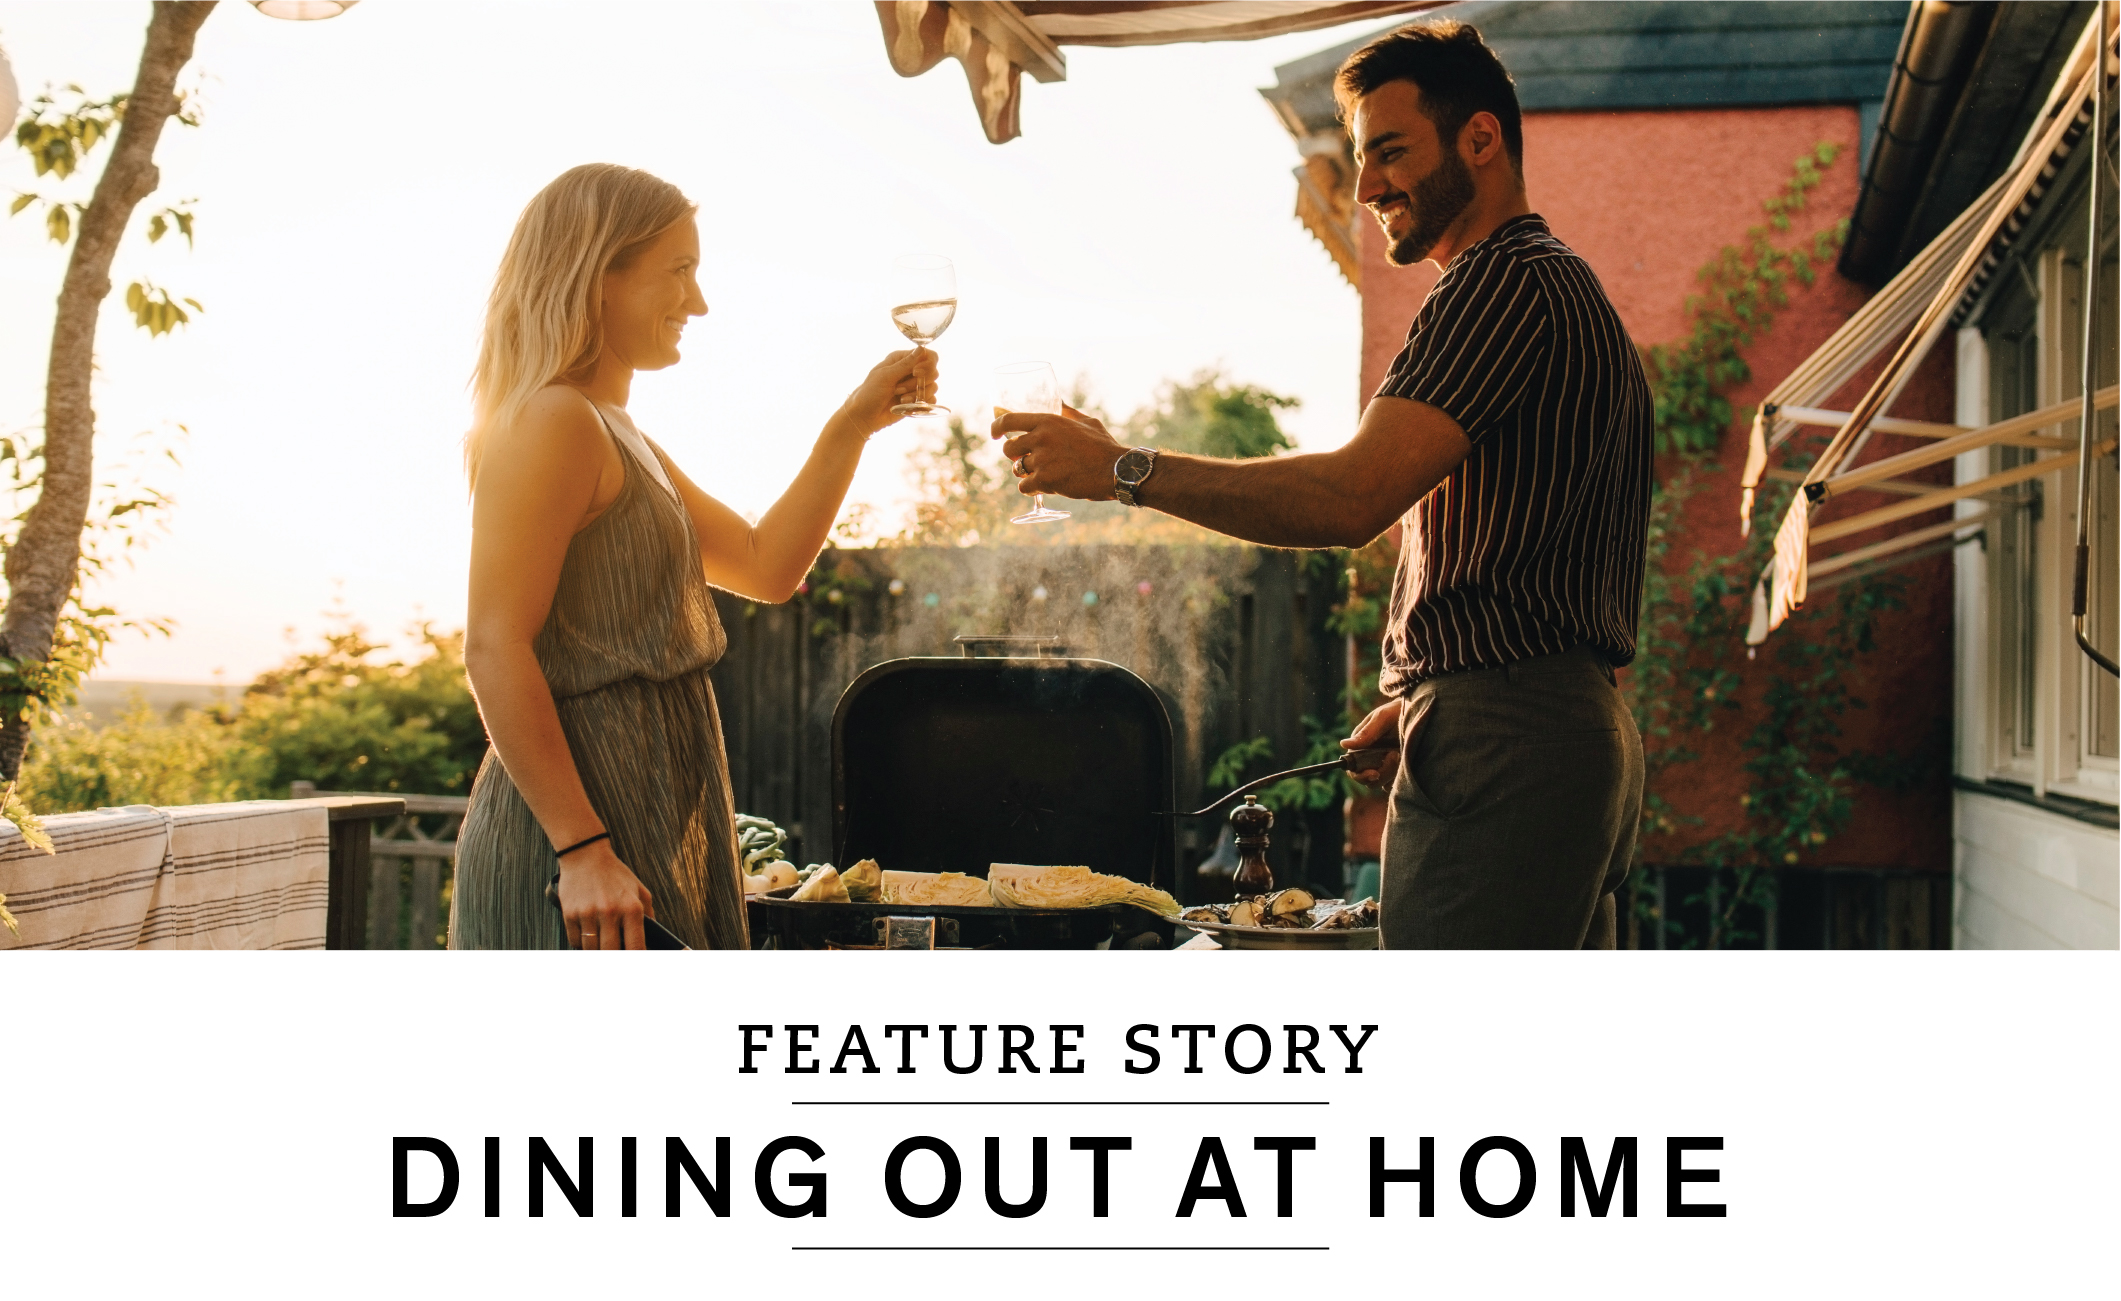 FEATURE STORY: Dining out at home